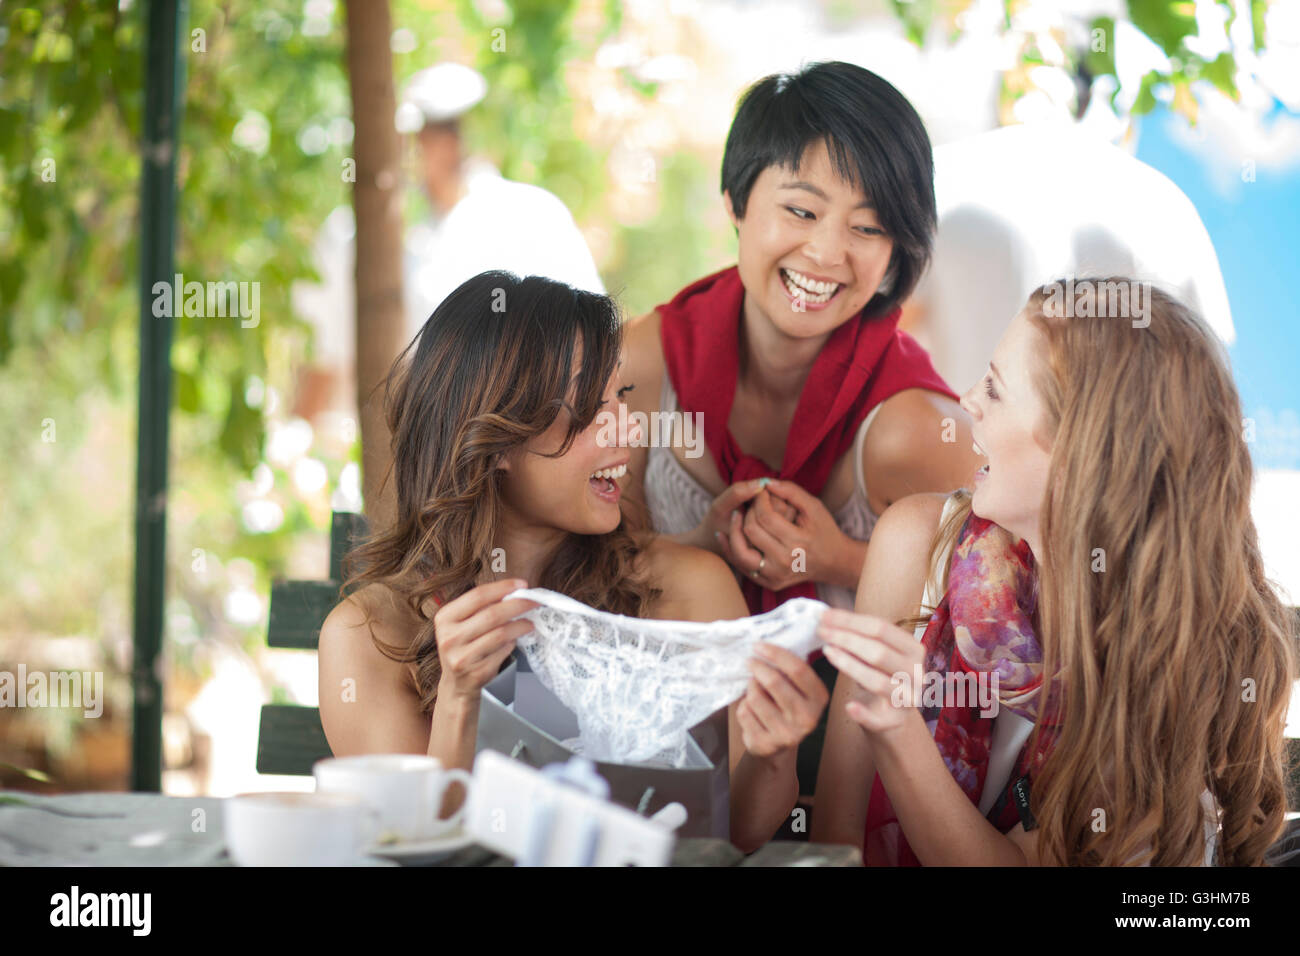 Three female shopping friends laughing at new knickers at sidewalk cafe in city - Stock Image